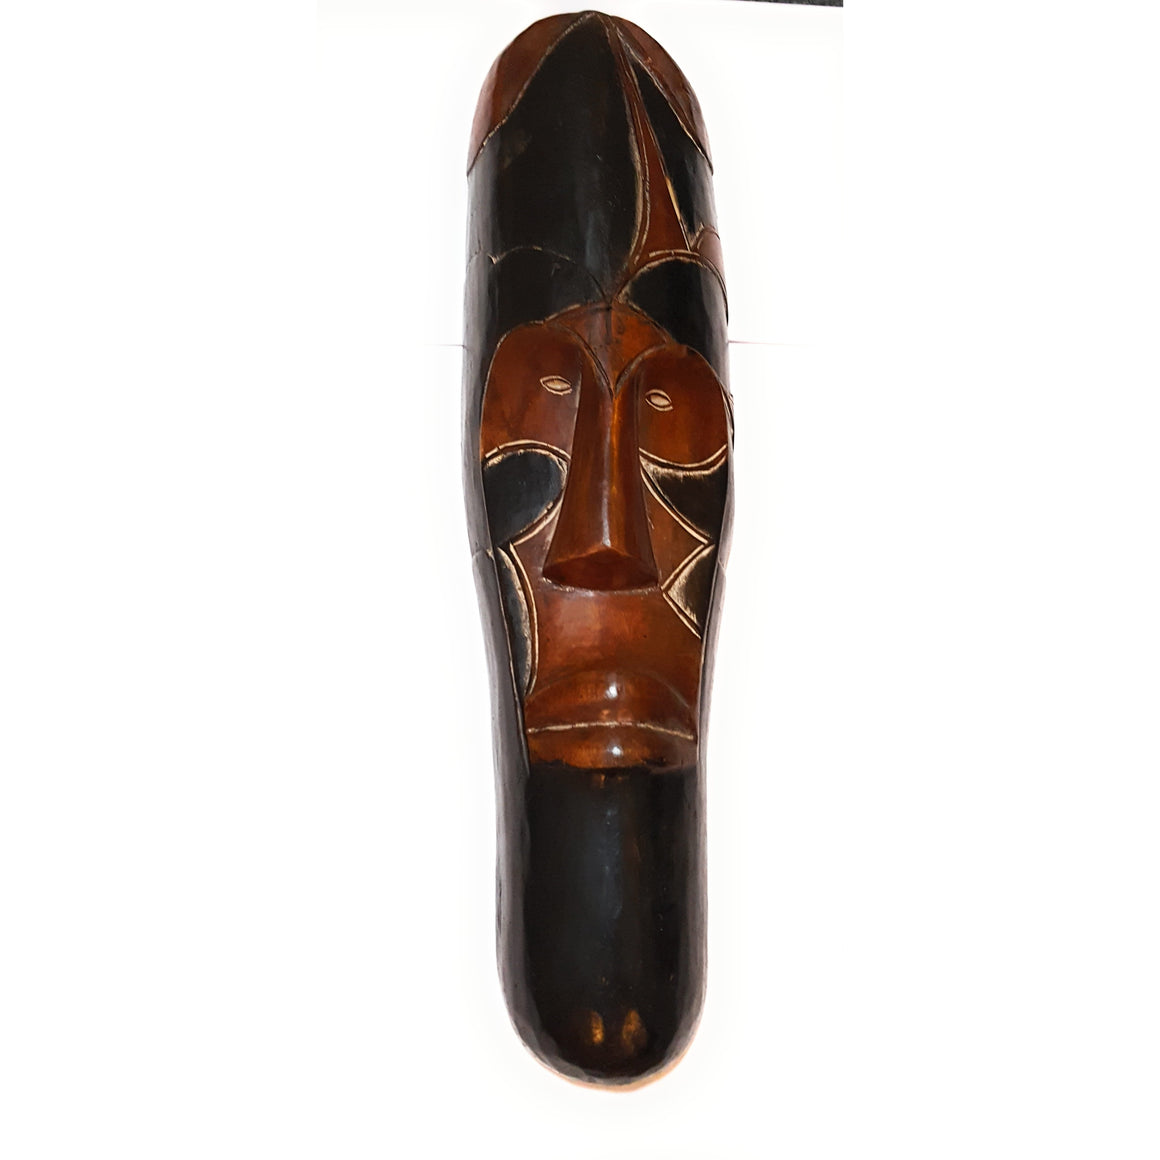 "25"" African Gabon Cameroon Wood Fang Mask: Brown and Black - Laura Baby and Company"